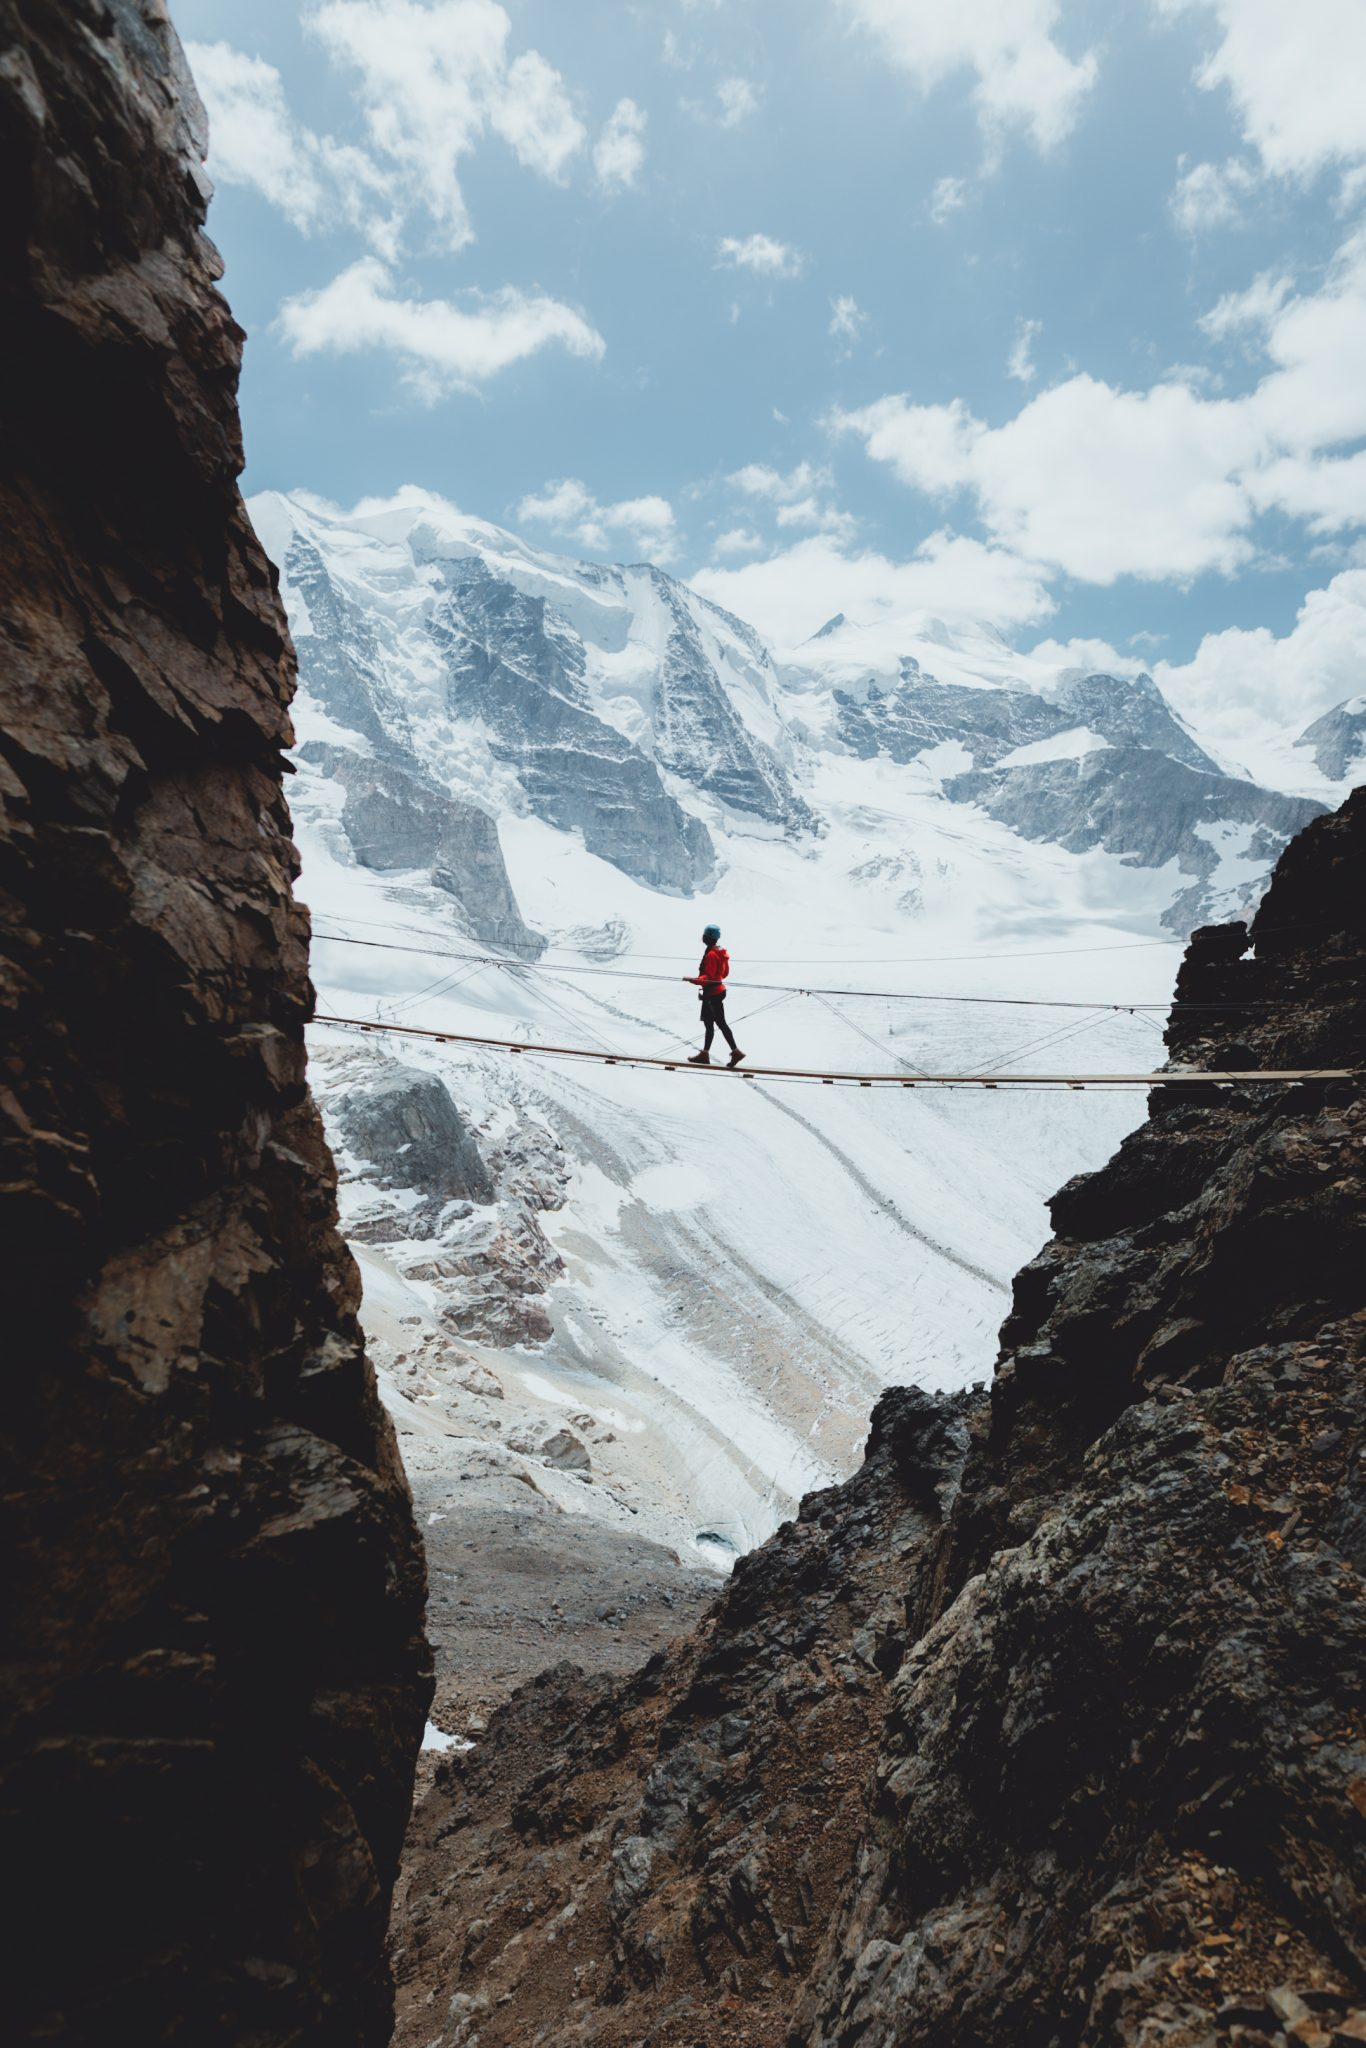 Climber crossing a rope bridge